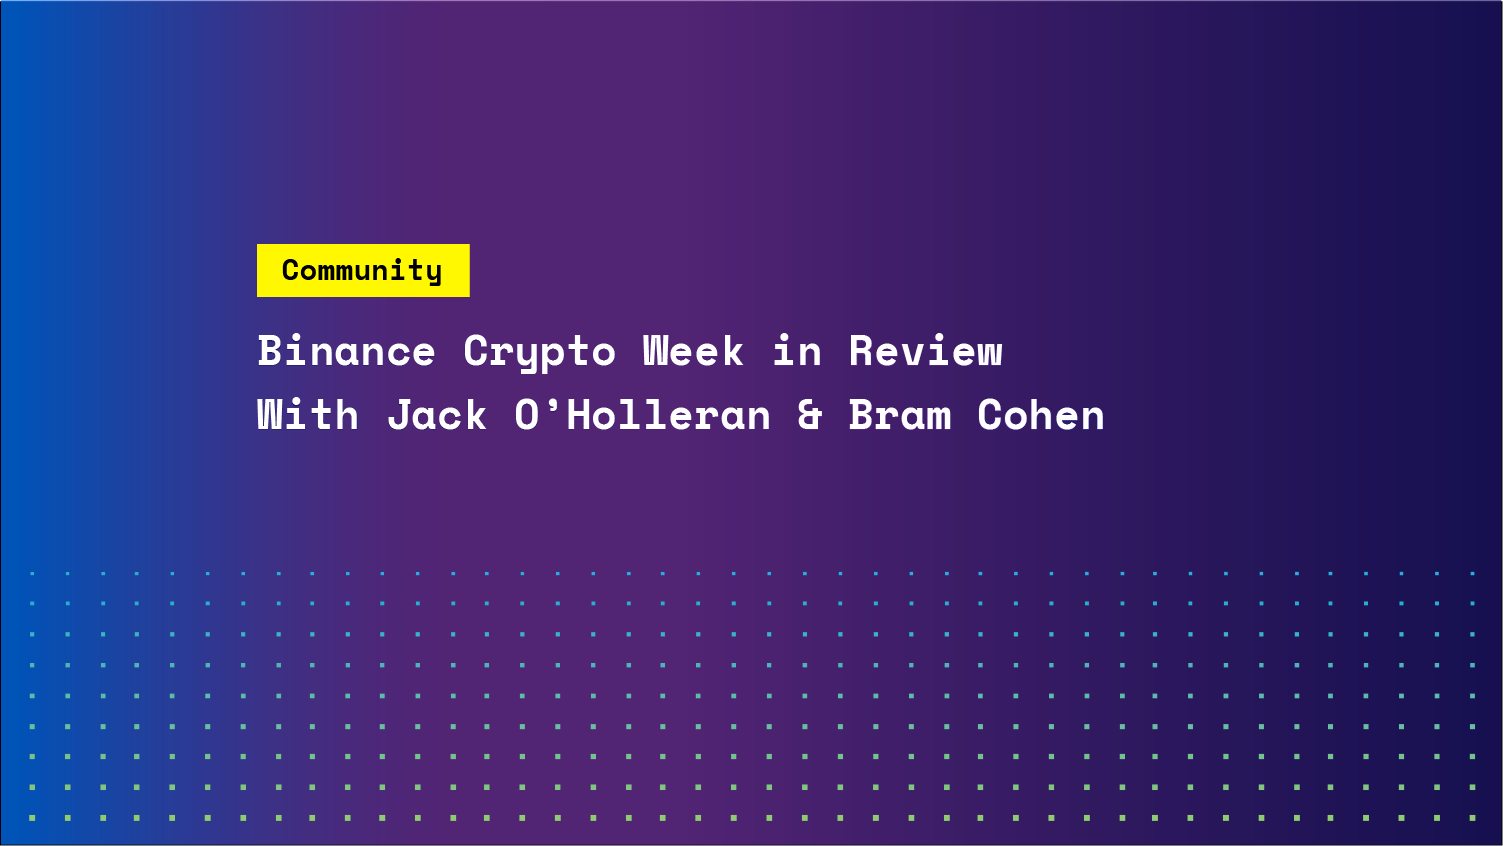 Binance Crypto Week in Review featuring Jack & Bram Cohen